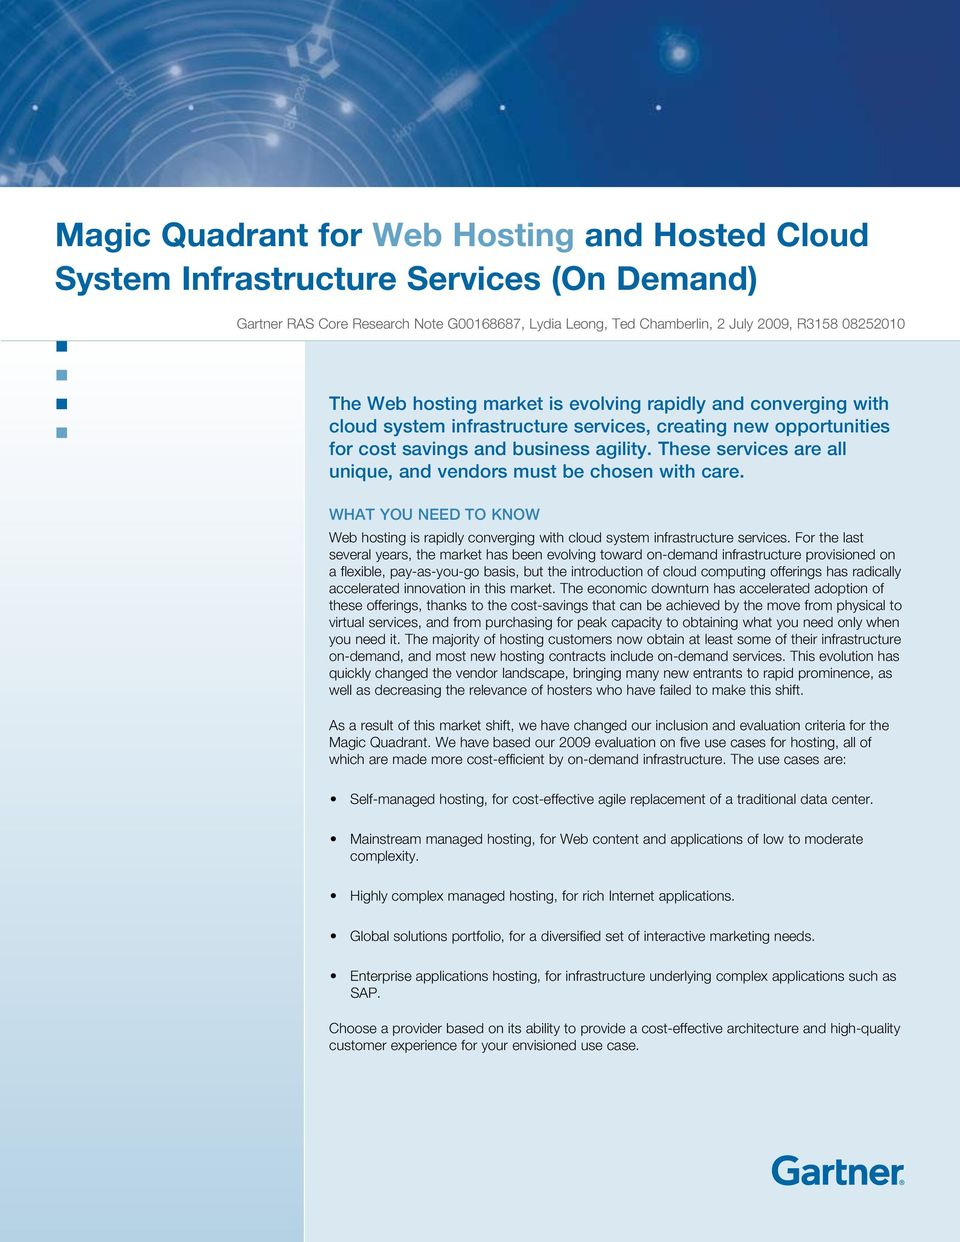 These services are all unique, and vendors must be chosen with care. WHAT YOU NEED TO KNOW Web hosting is rapidly converging with cloud system infrastructure services.